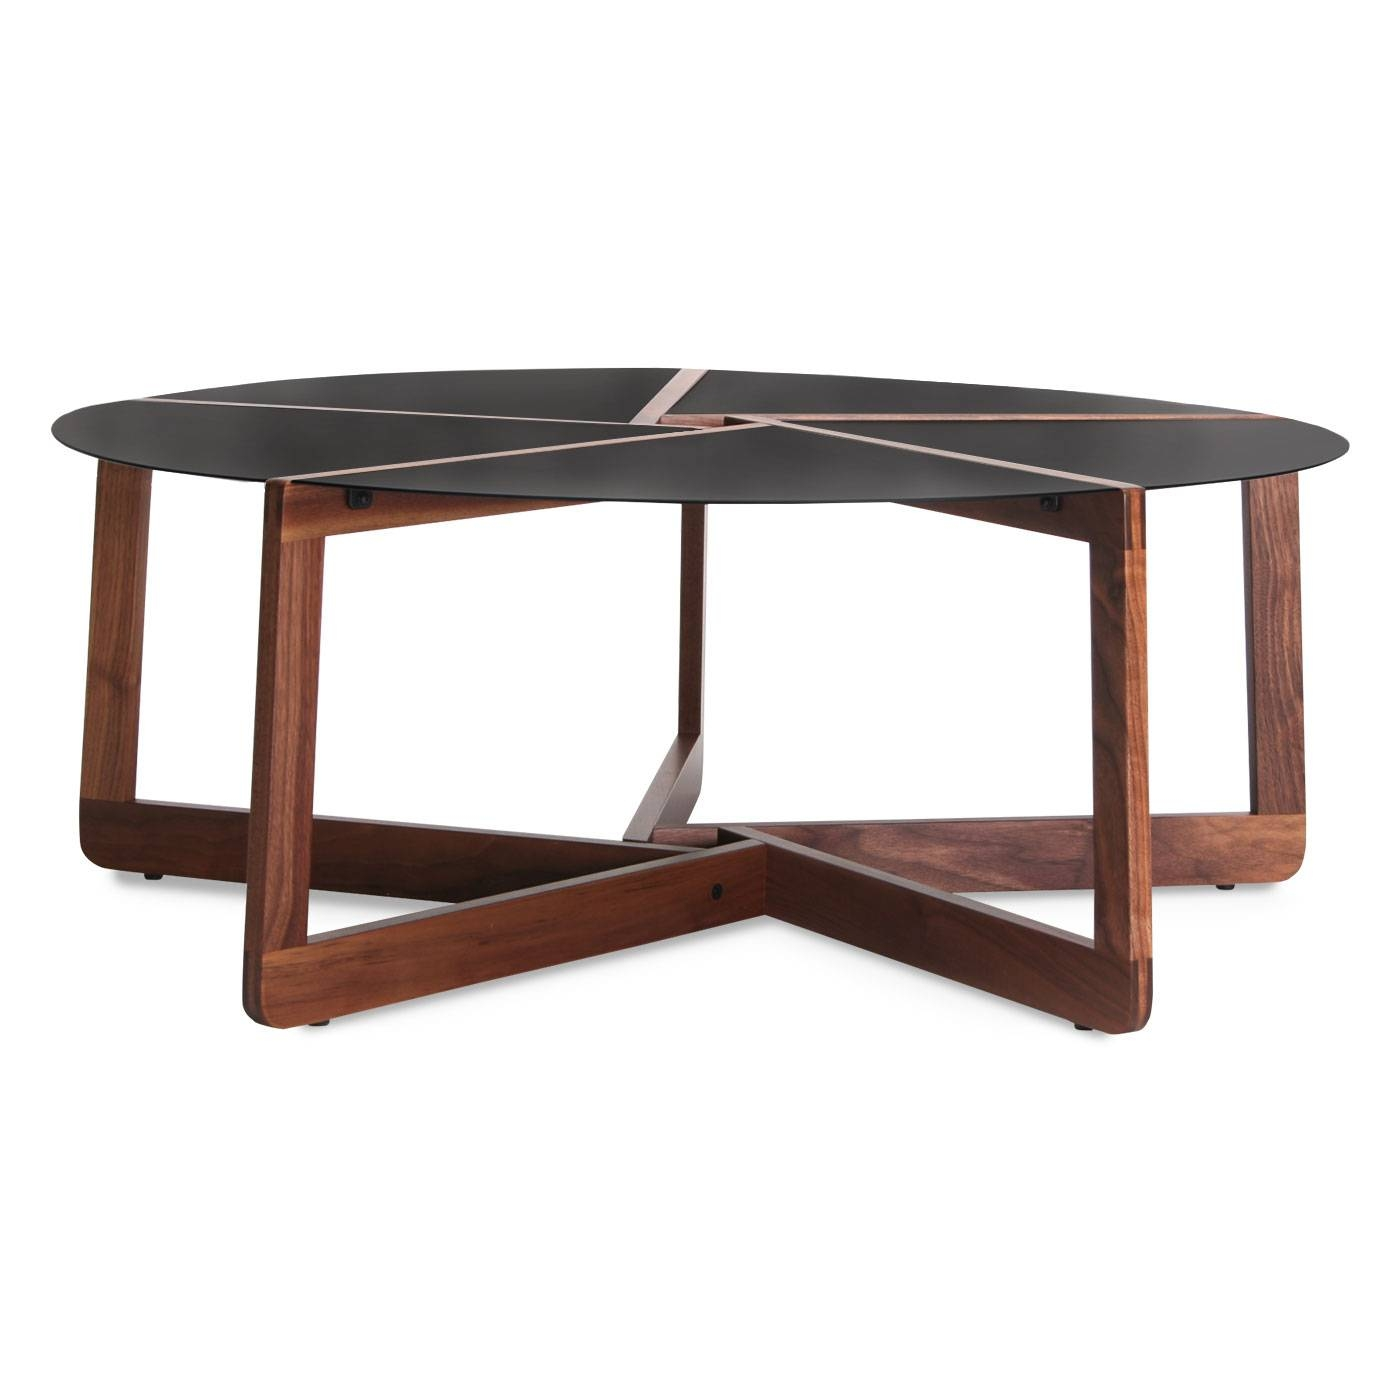 Pi Coffee Table - Round Wood & Metal Coffee Table | Blu Dot intended for Metal Coffee Tables (Image 28 of 30)